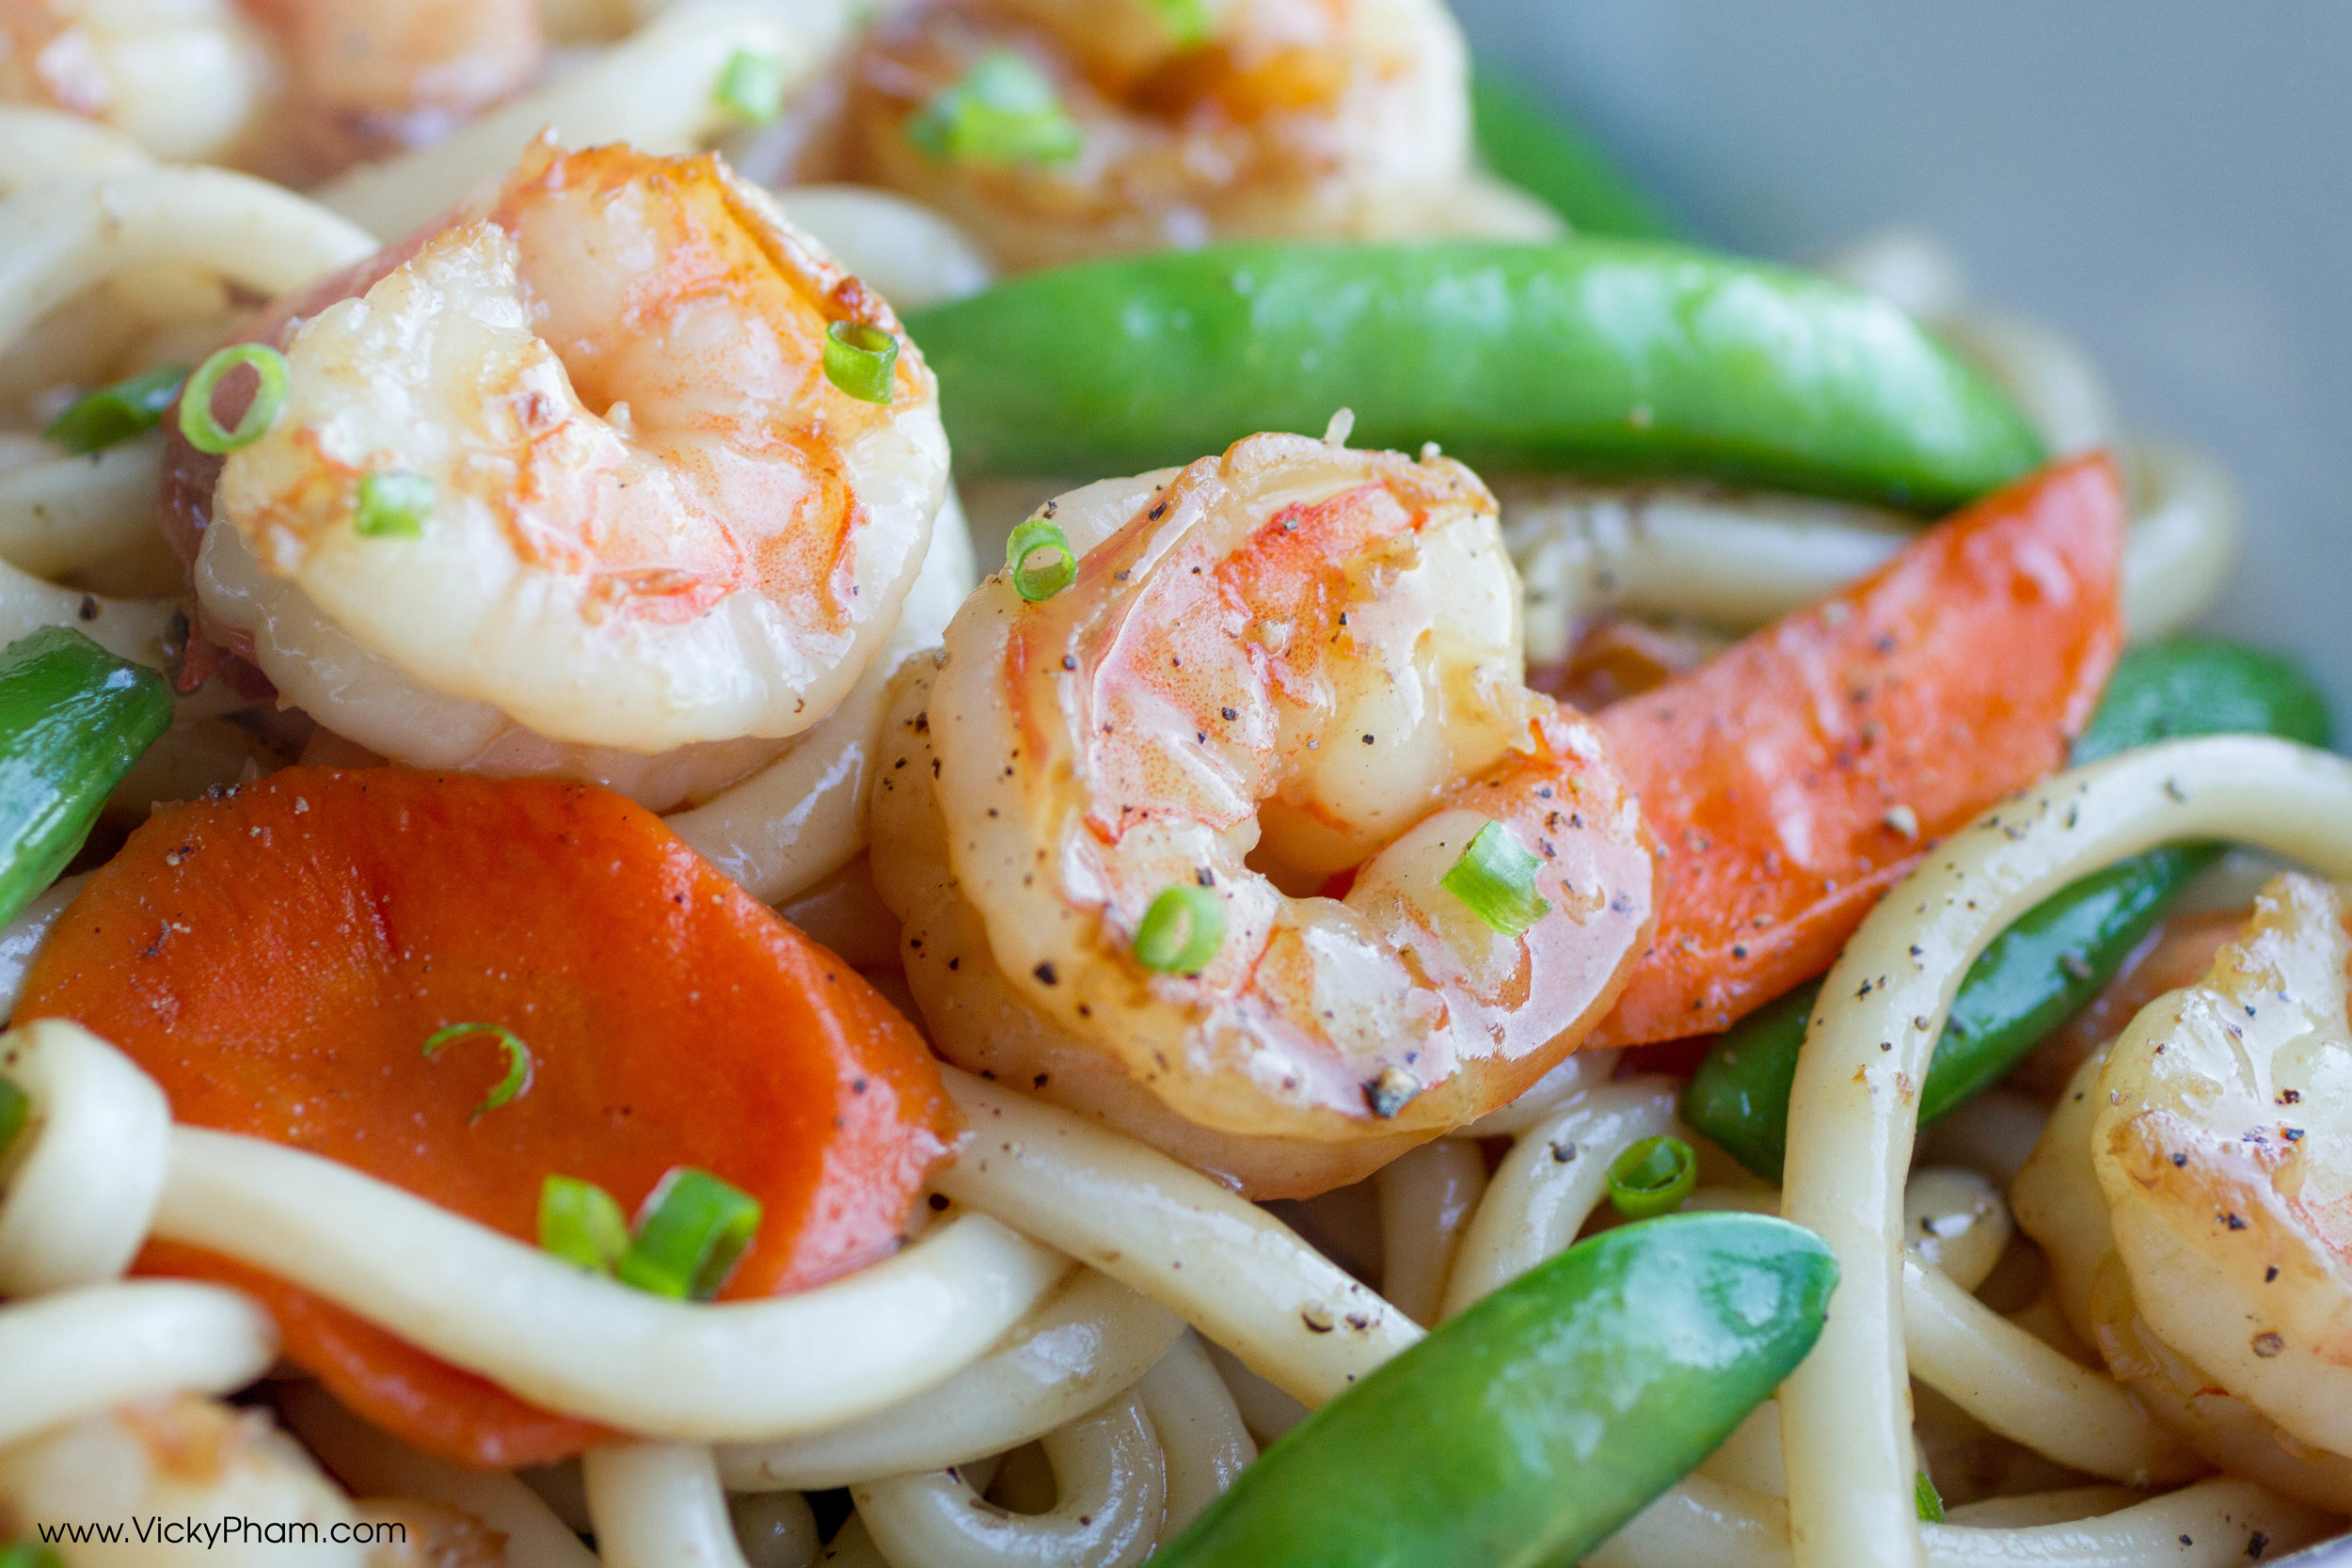 Stir-Fried Udon with Shrimp, Sugar Snap Peas and Carrots